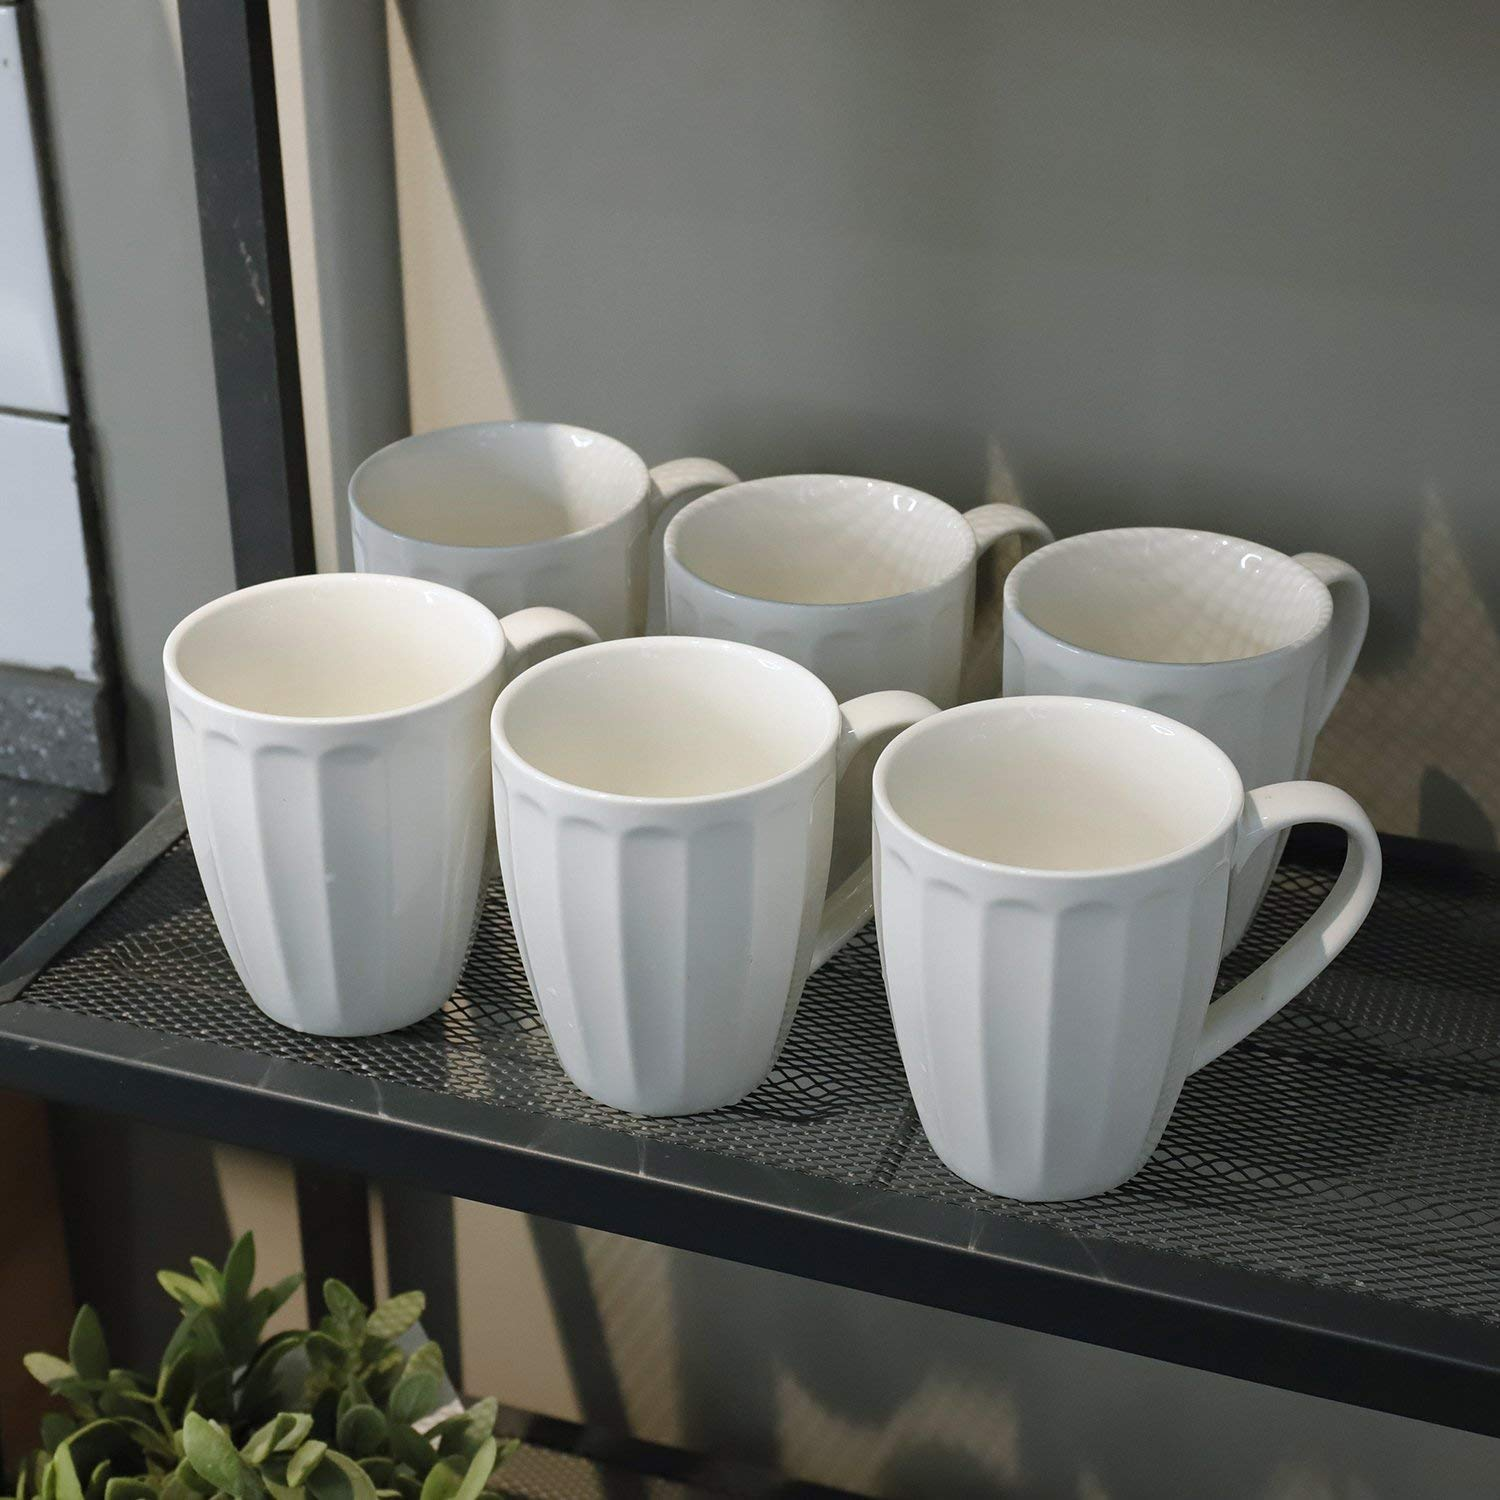 Sweese 6208 Porcelain Fluted Mugs - 14 Ounce for Coffee, Tea, Cocoa, Set of 6, White by Sweese (Image #4)